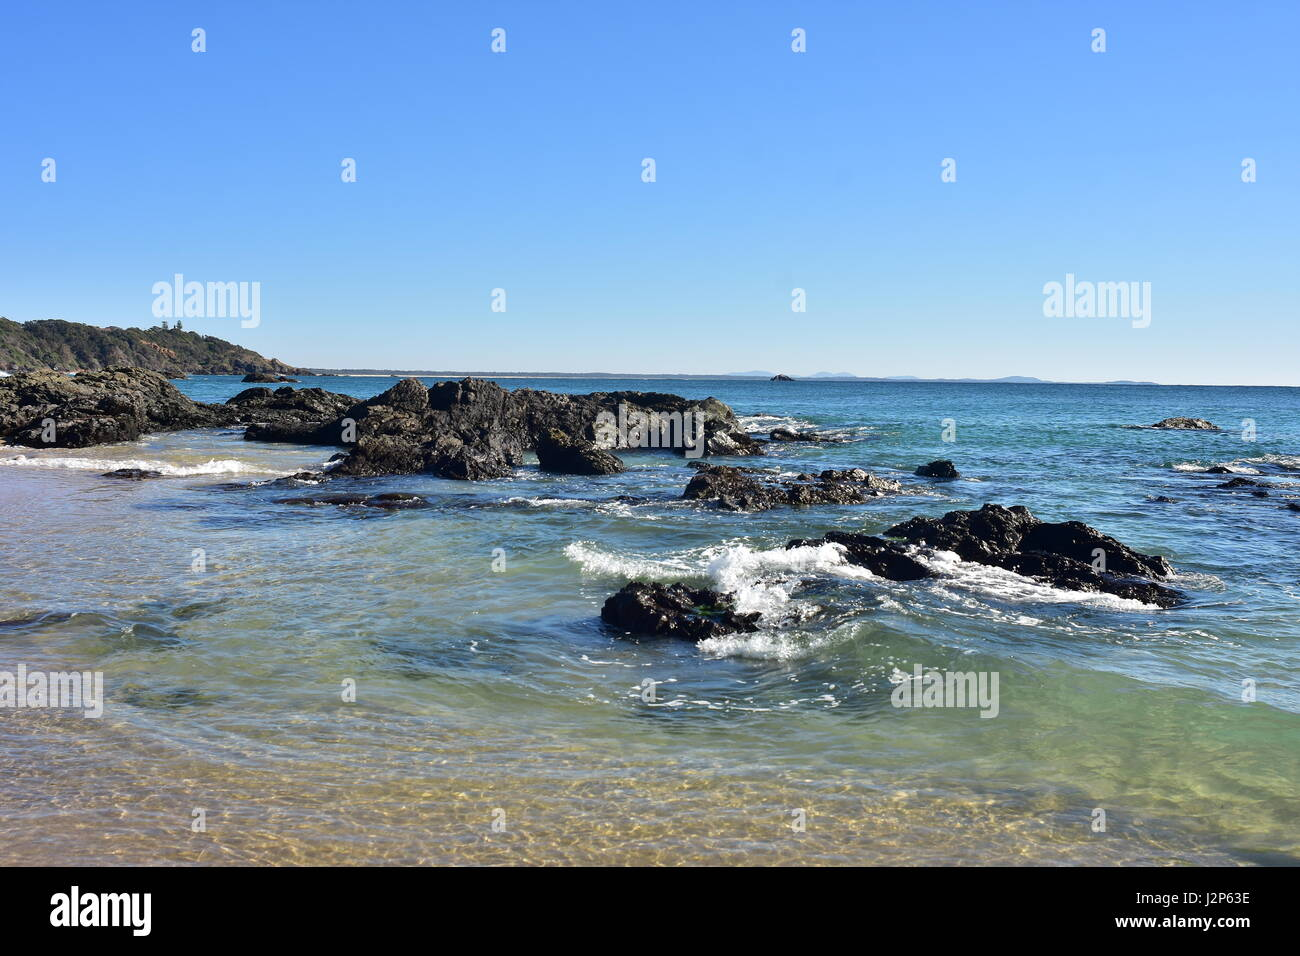 Sandy beach with dark rock formations on Nobby Beach in Port Macquarie. - Stock Image